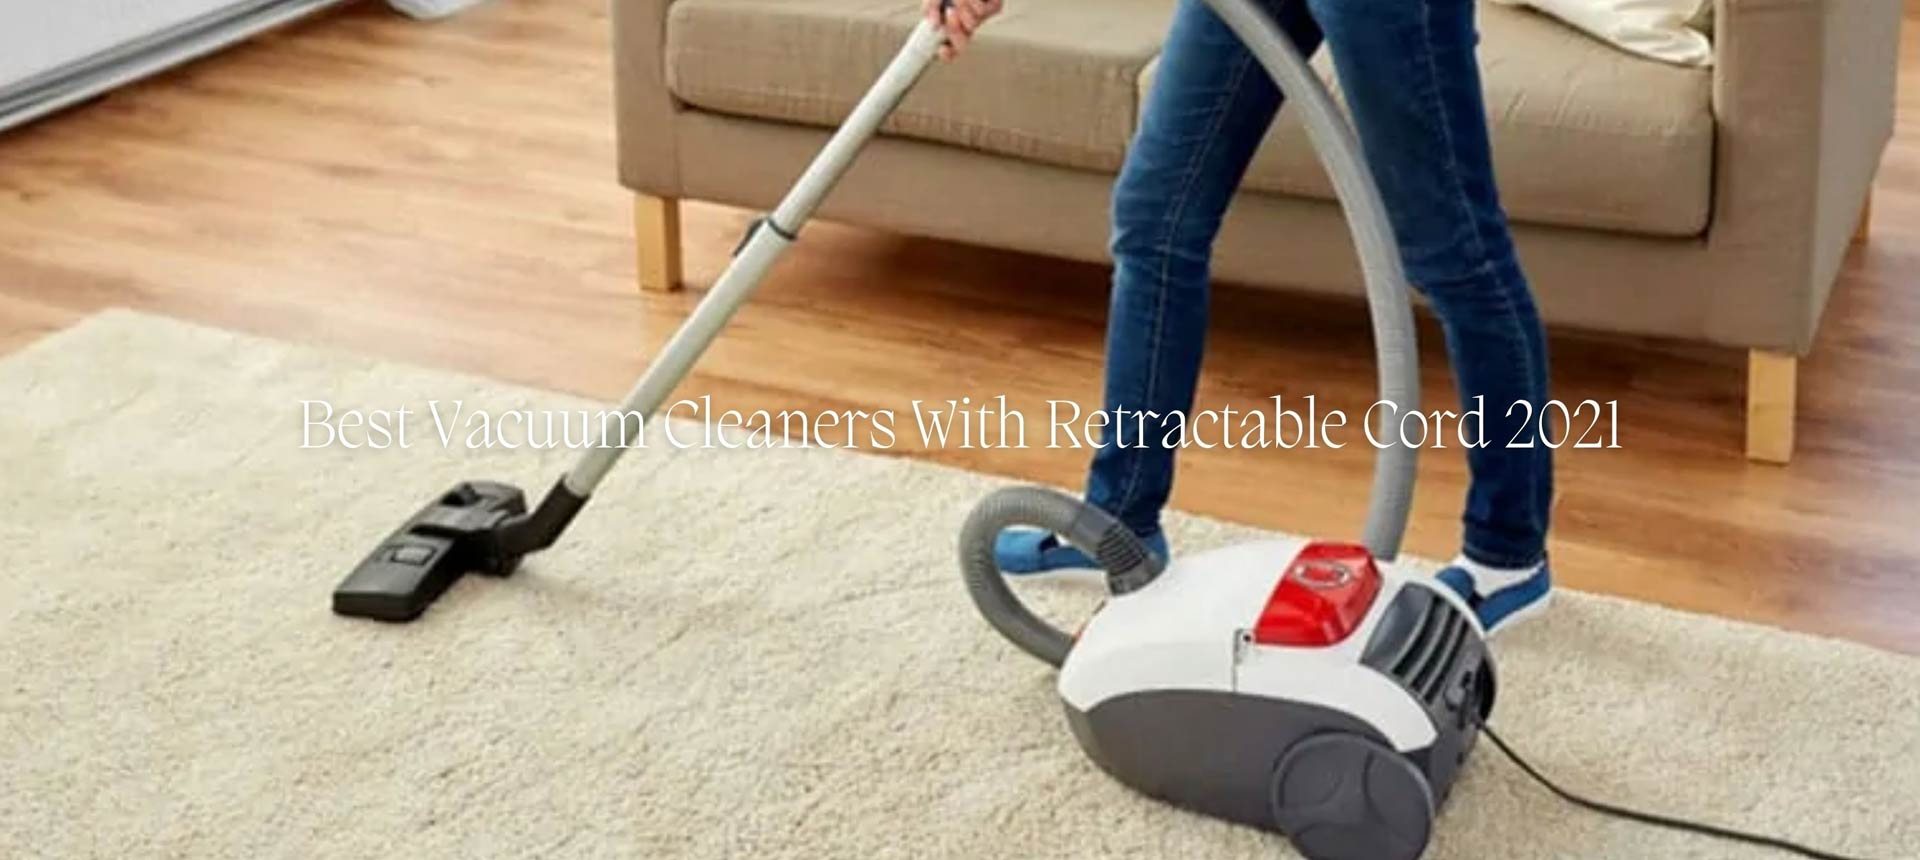 Best Vacuum Cleaners With Retractable Cord 2021